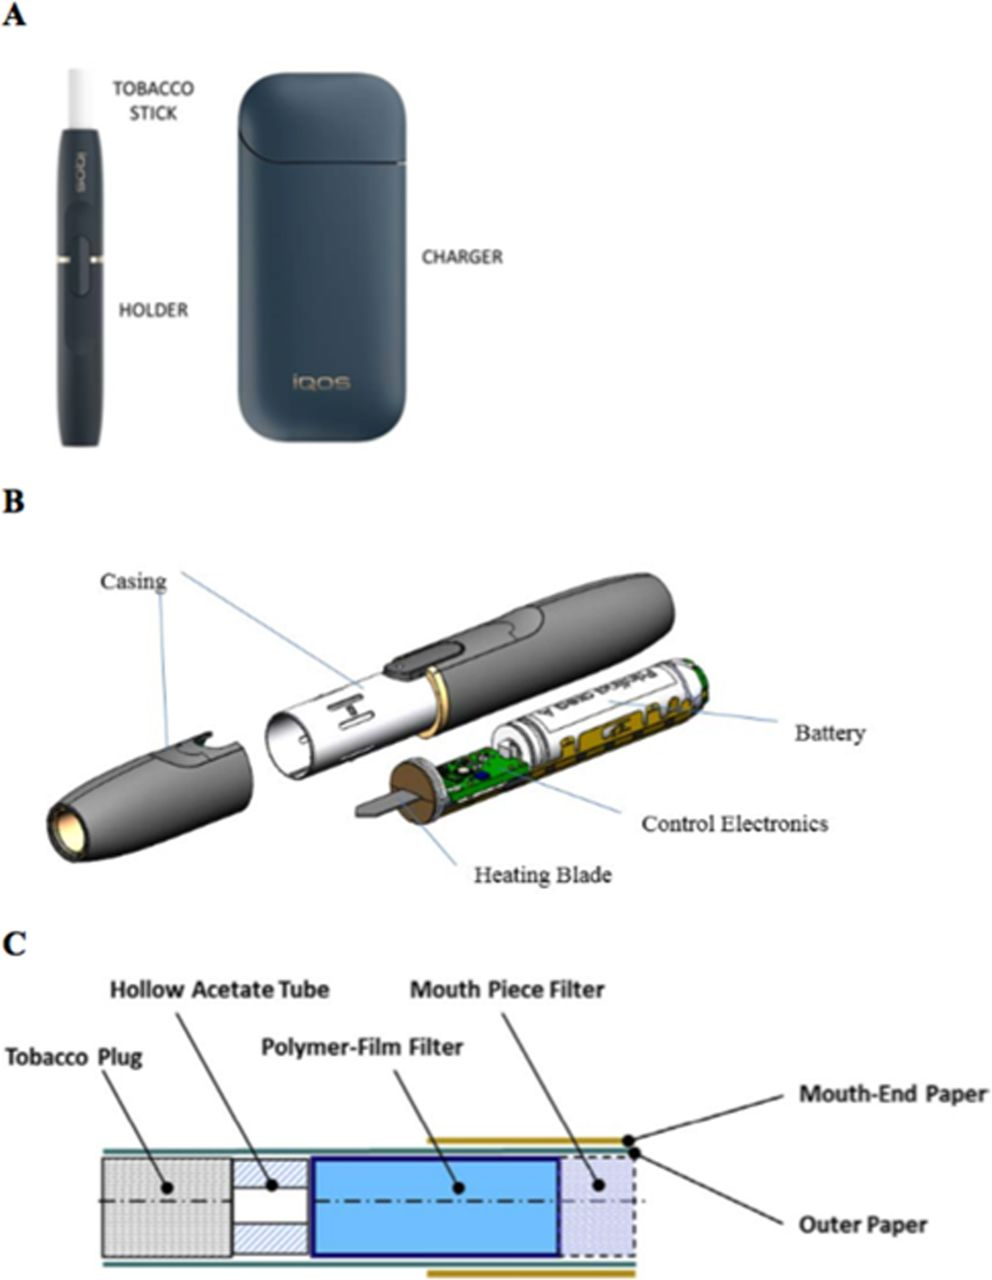 Heated tobacco products: the example of IQOS   Tobacco Control